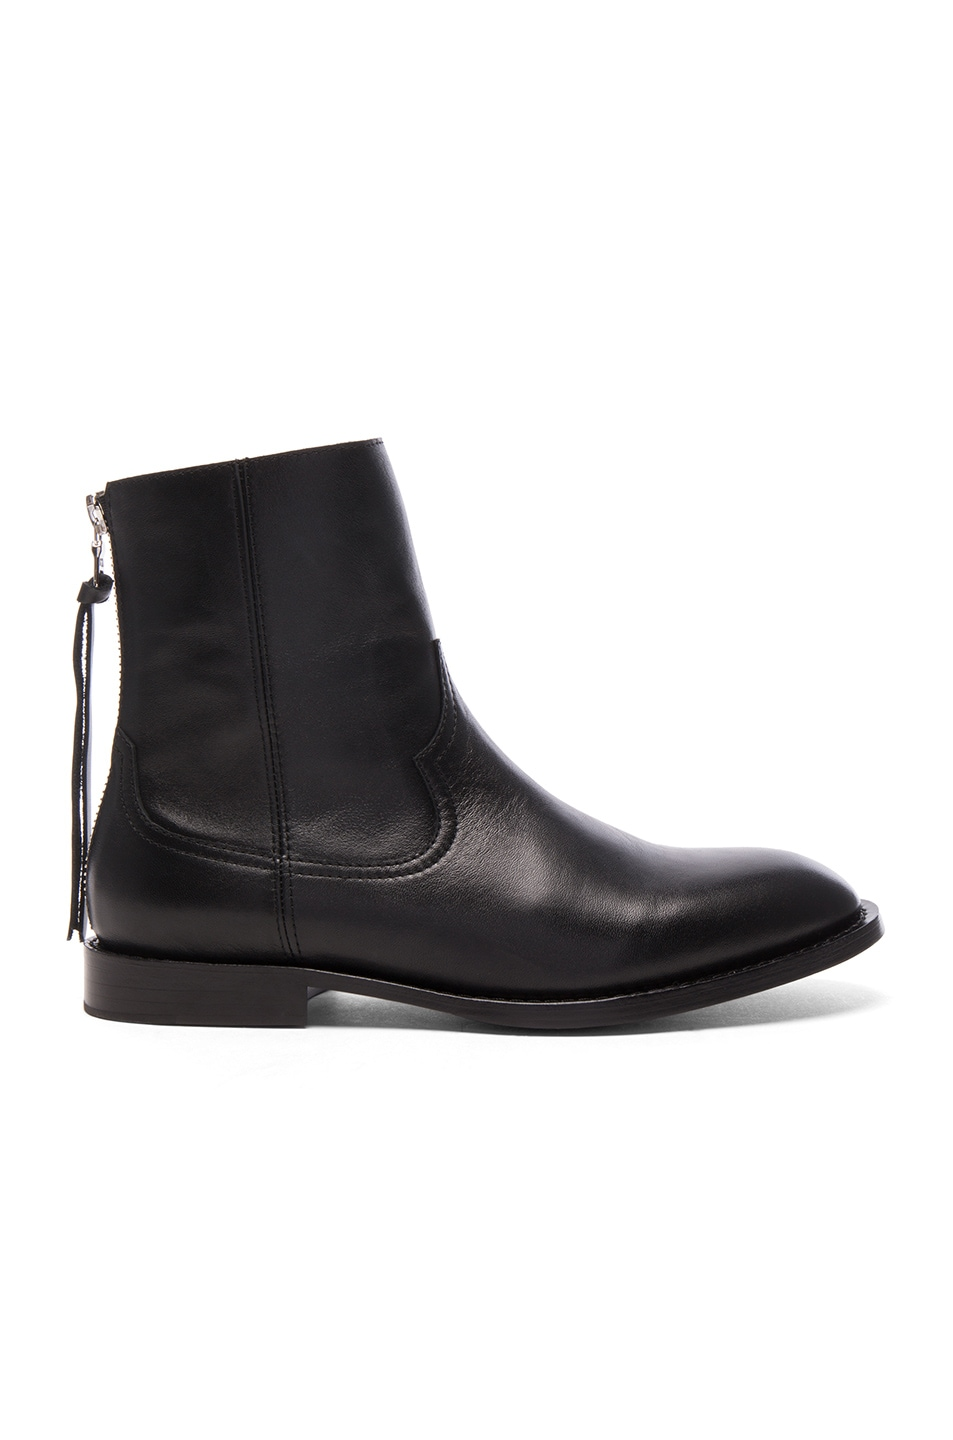 Image 2 of Amiri Leather Shane Boots in Black Leather